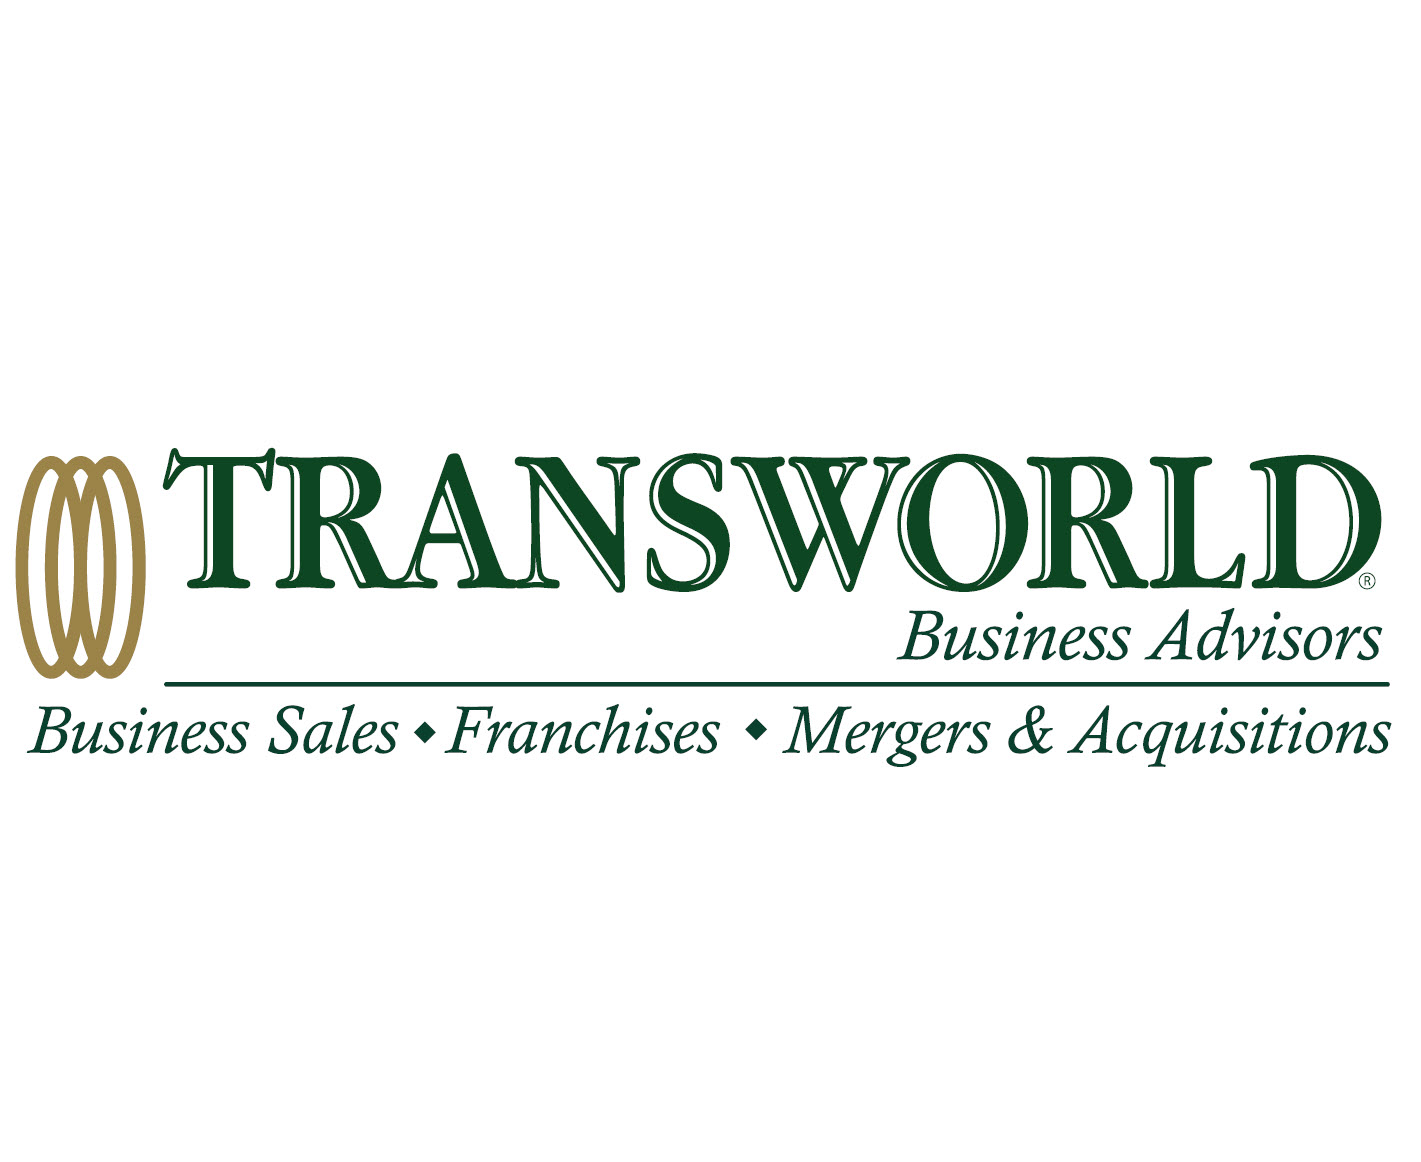 Transworld Business Advisors Parramatta Logo